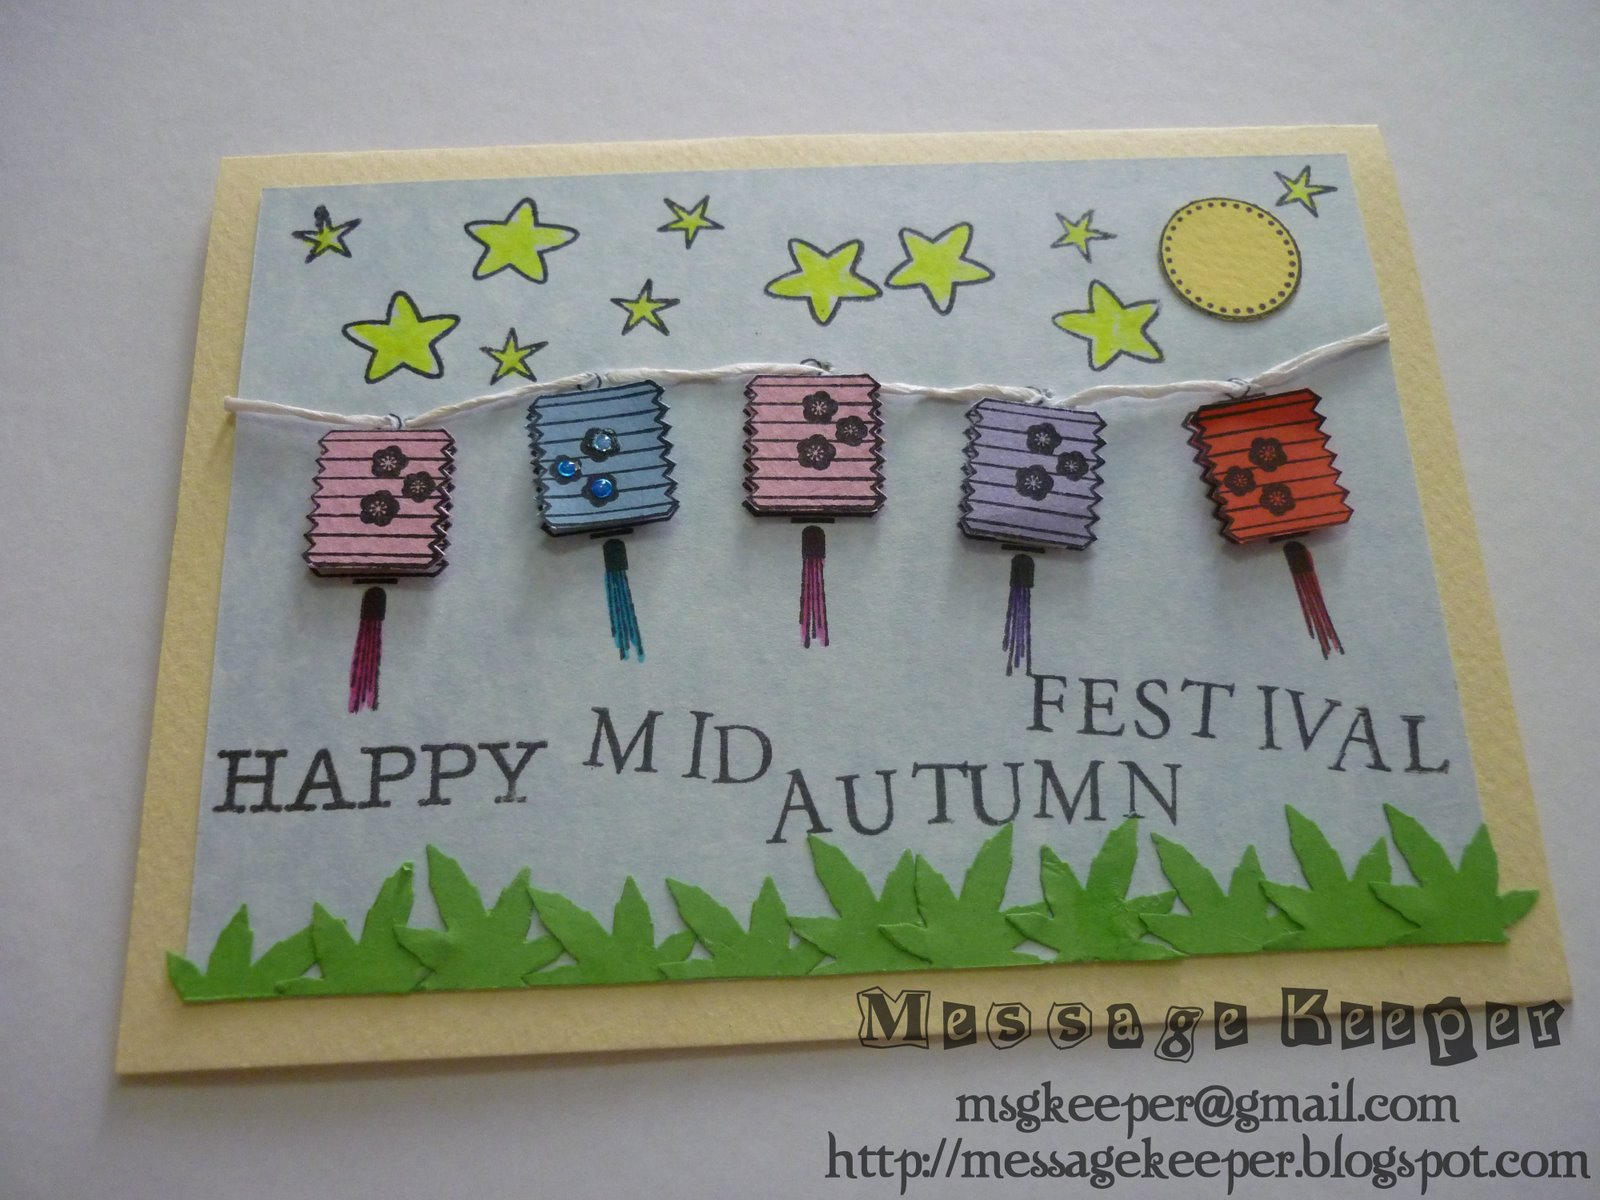 Message Keeper Happy Mid Autumn Festival Card 1